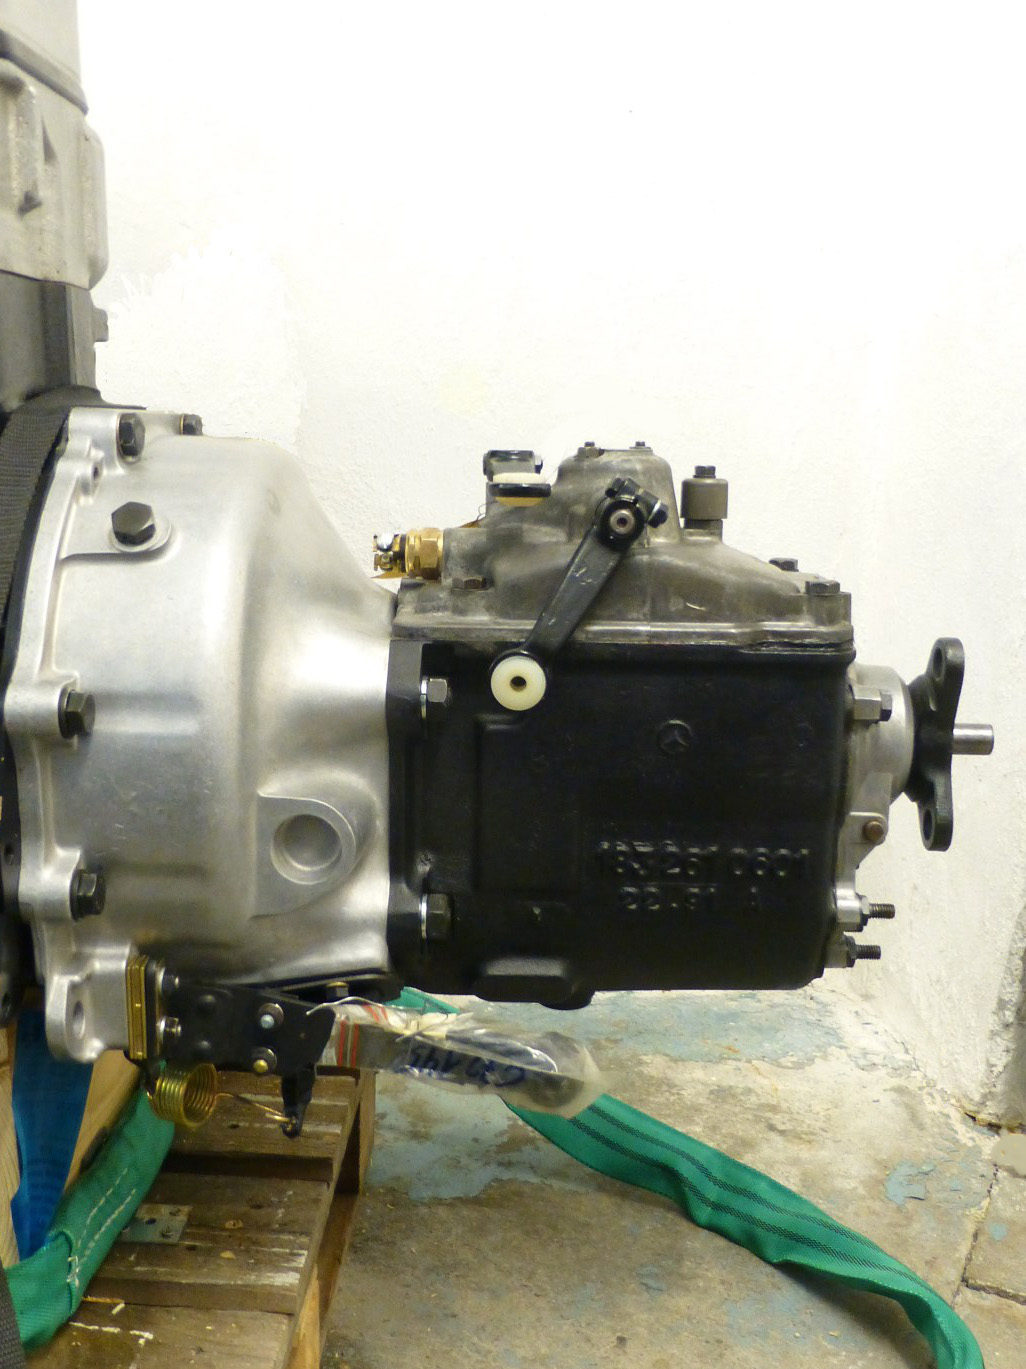 Assembled Mercedes-Benz Ponton clutch and transmission